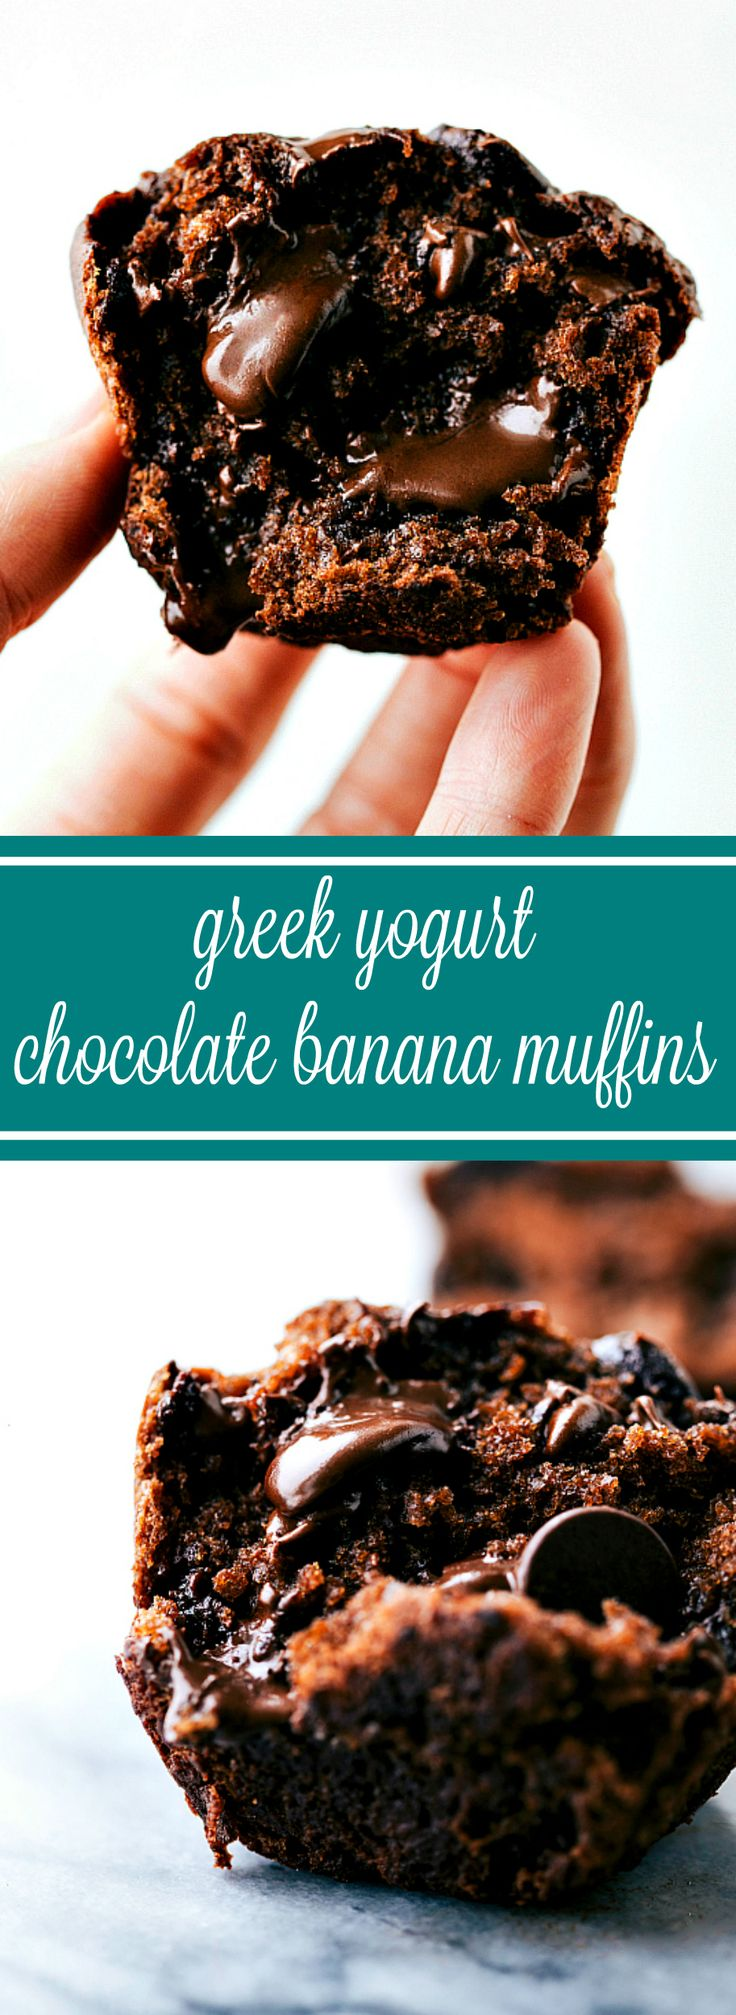 Delicious Bakery Style Greek Yogurt Chocolate Banana Muffins| healthy recipe ideas @xhealthyrecipex |                                                                                                                                                                                 Más